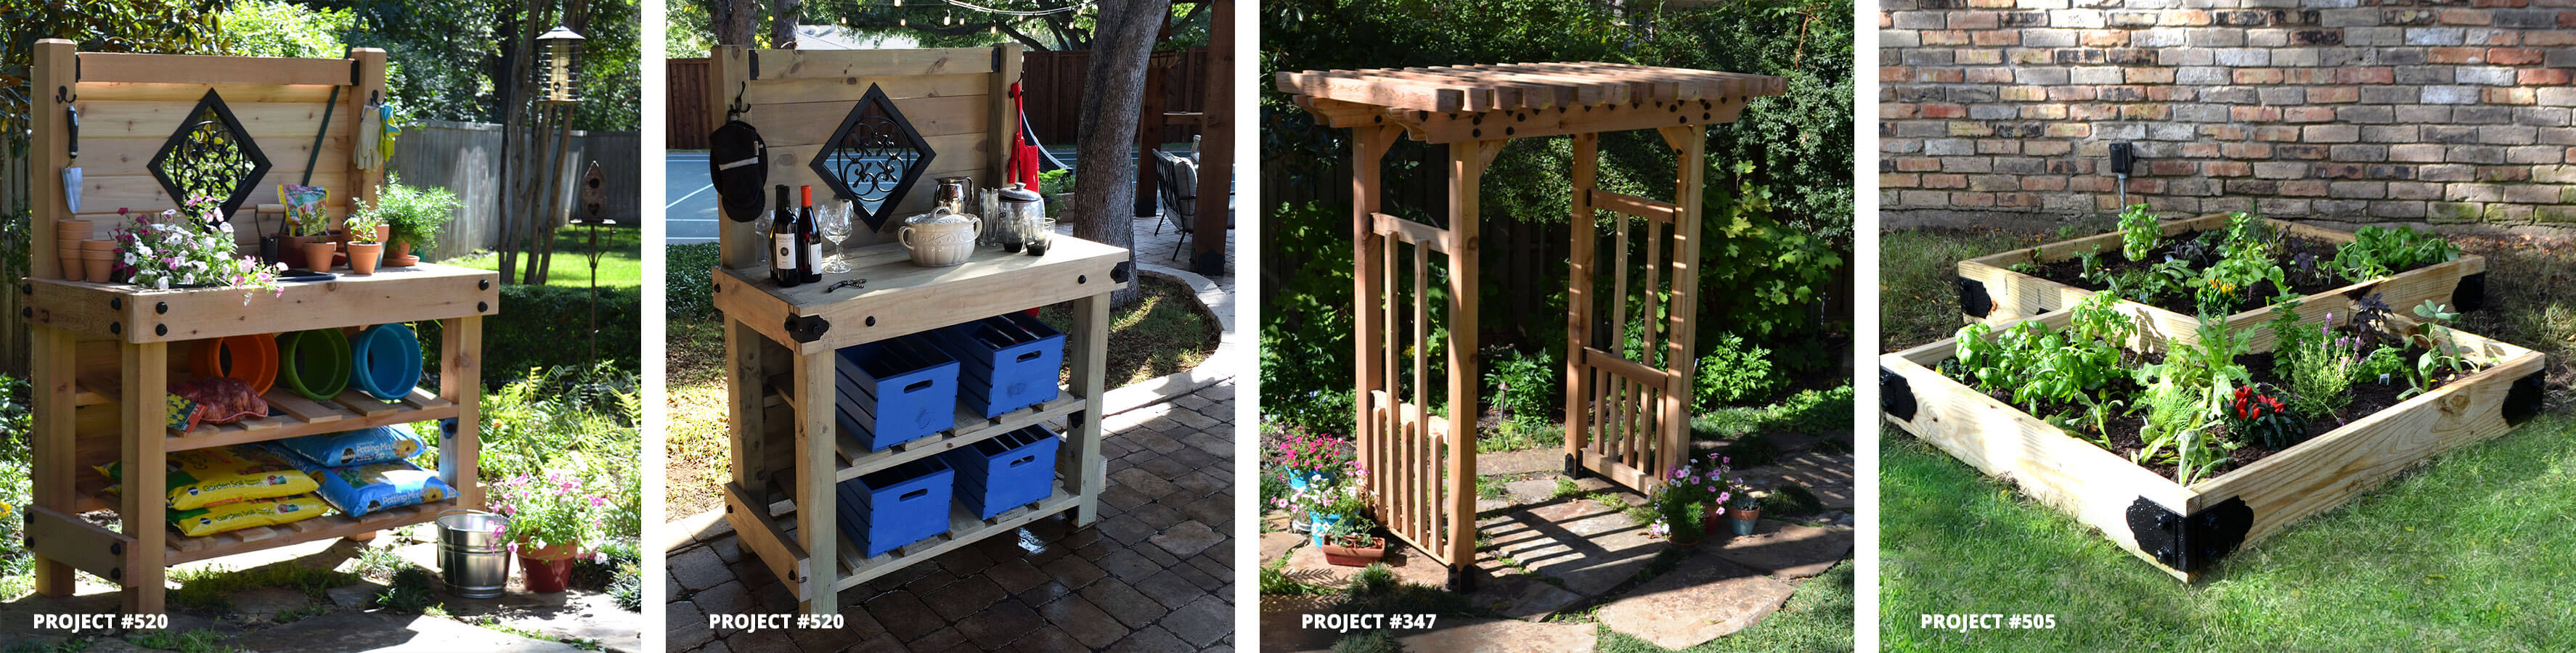 Garden Projects Buffet Potting Table Arbor Raised Bed